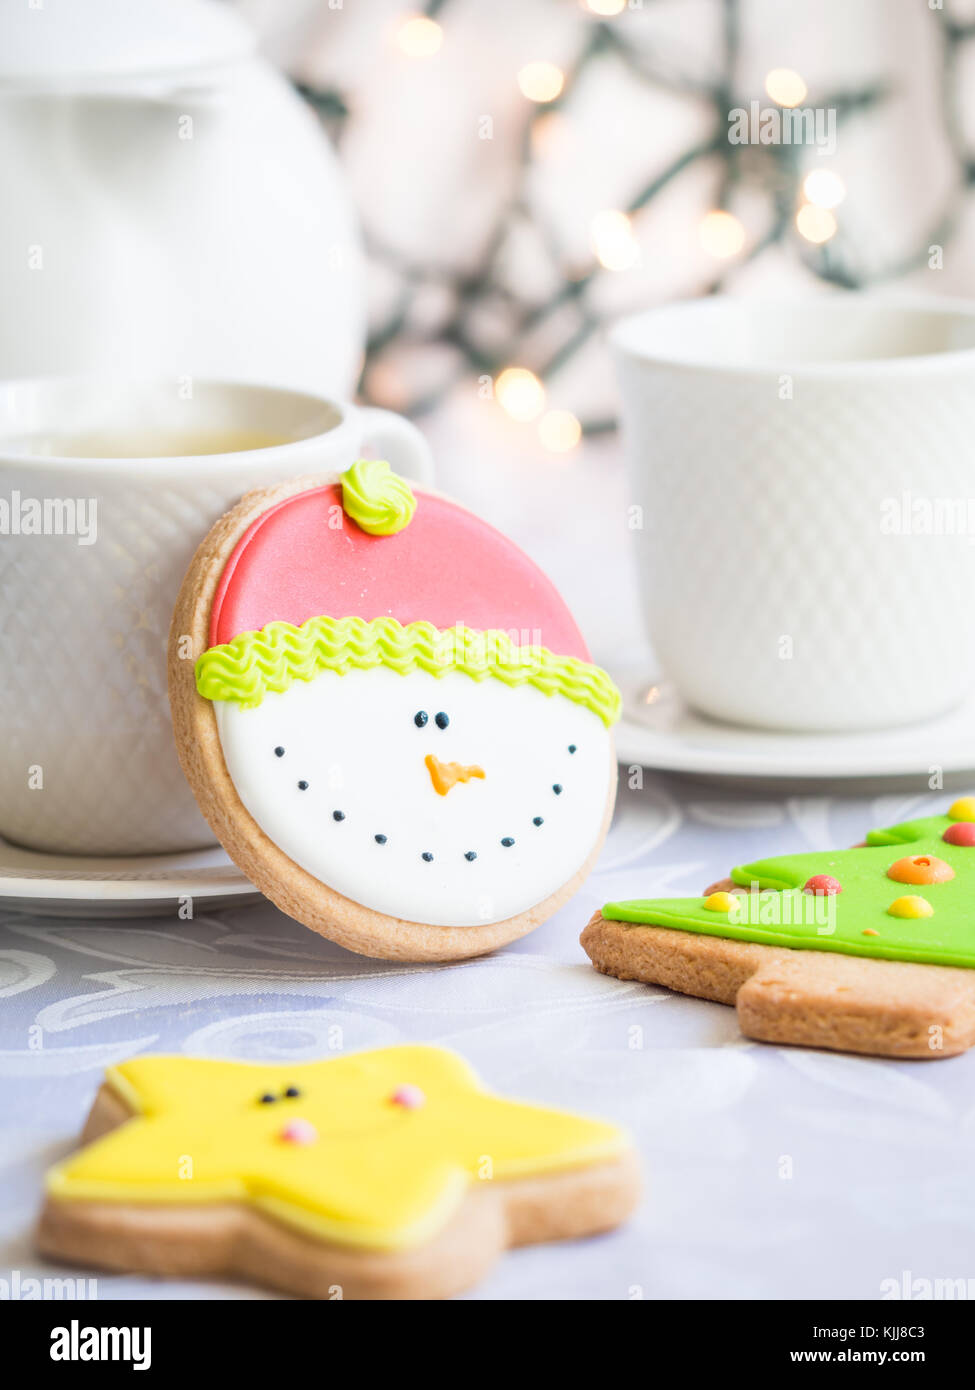 Decorated Christmas gingebread cookies. - Stock Image